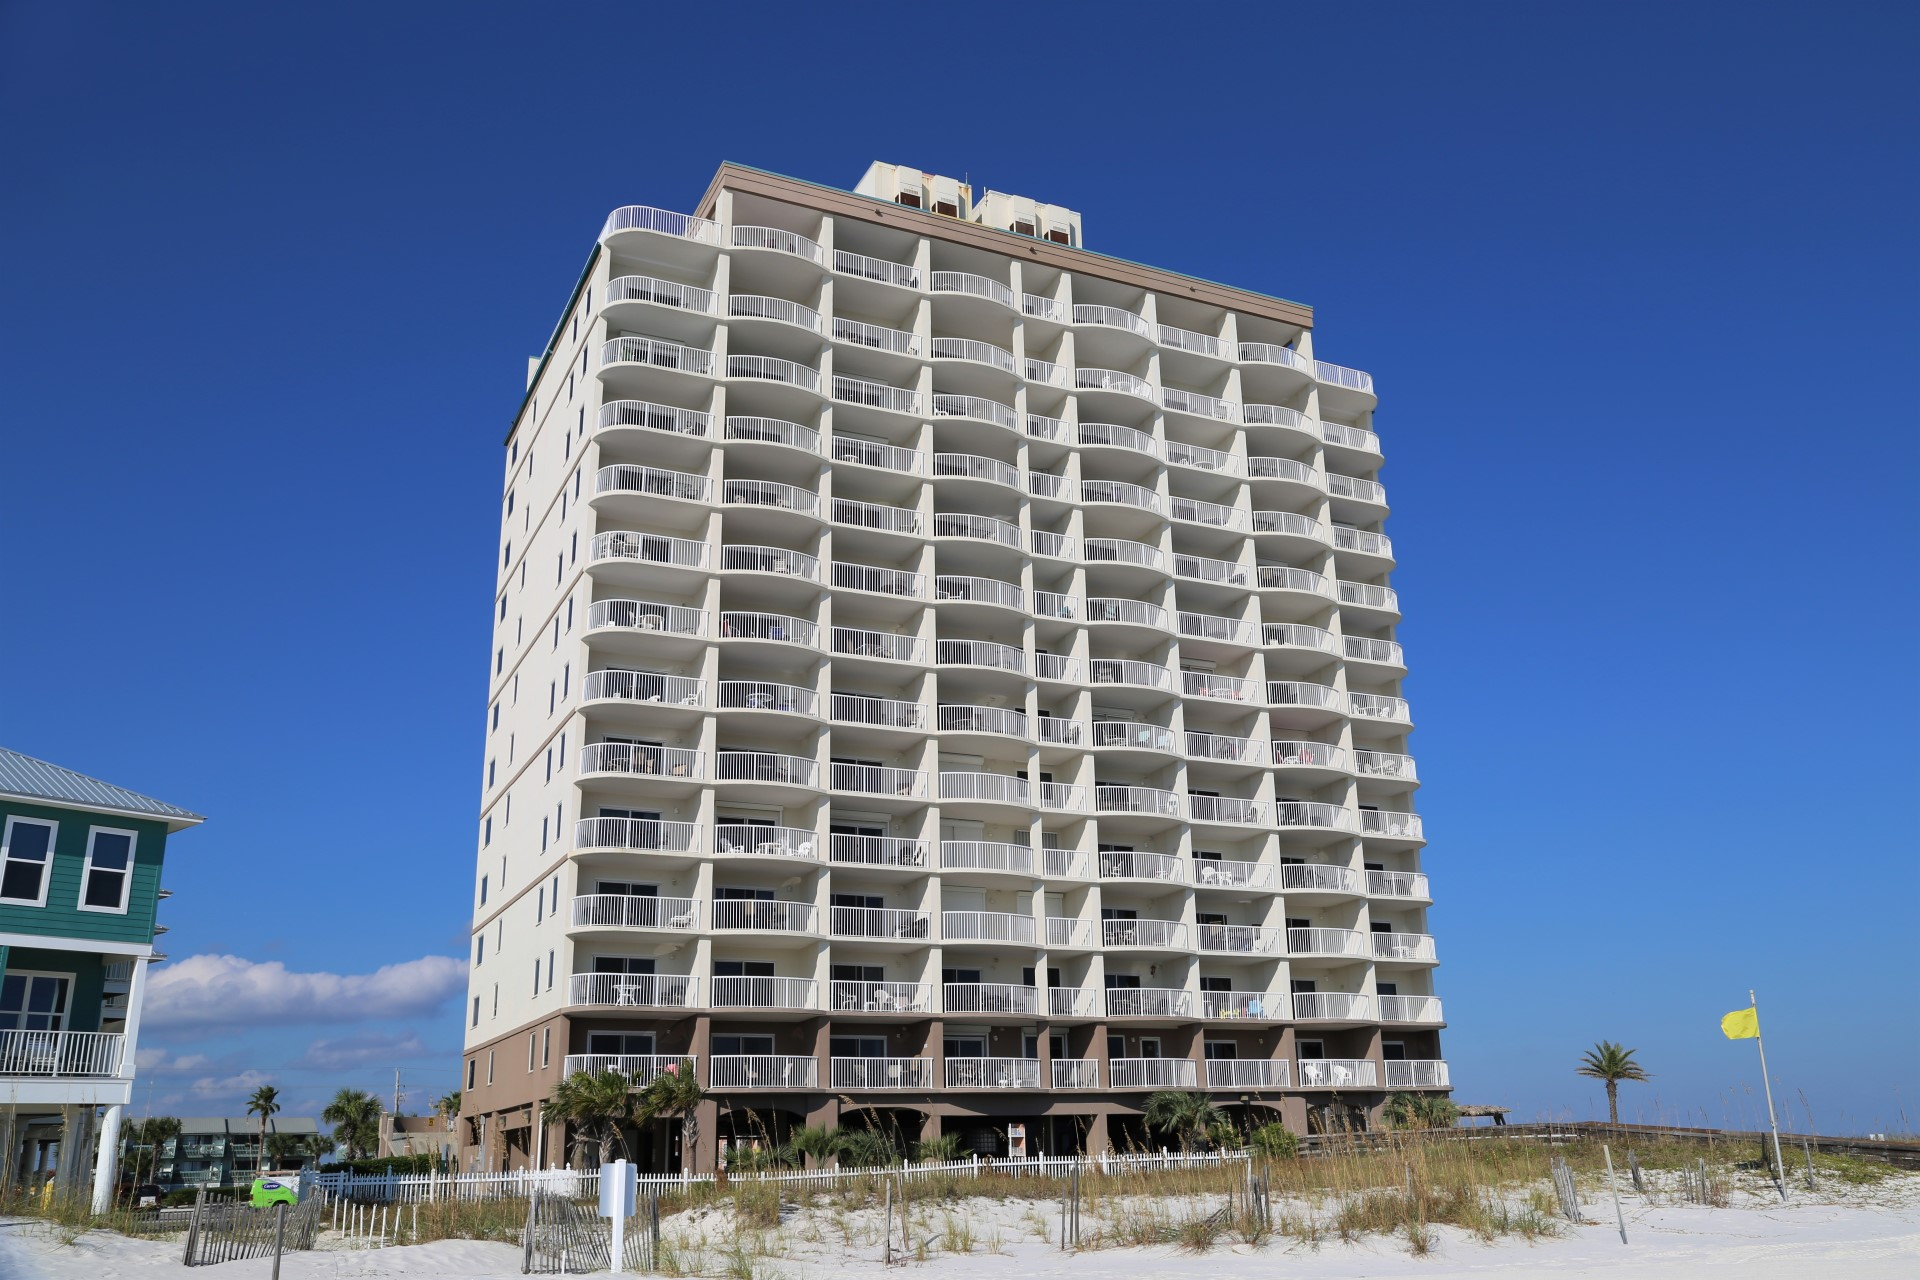 Royal Palms is directly on the beach in Gulf Shores